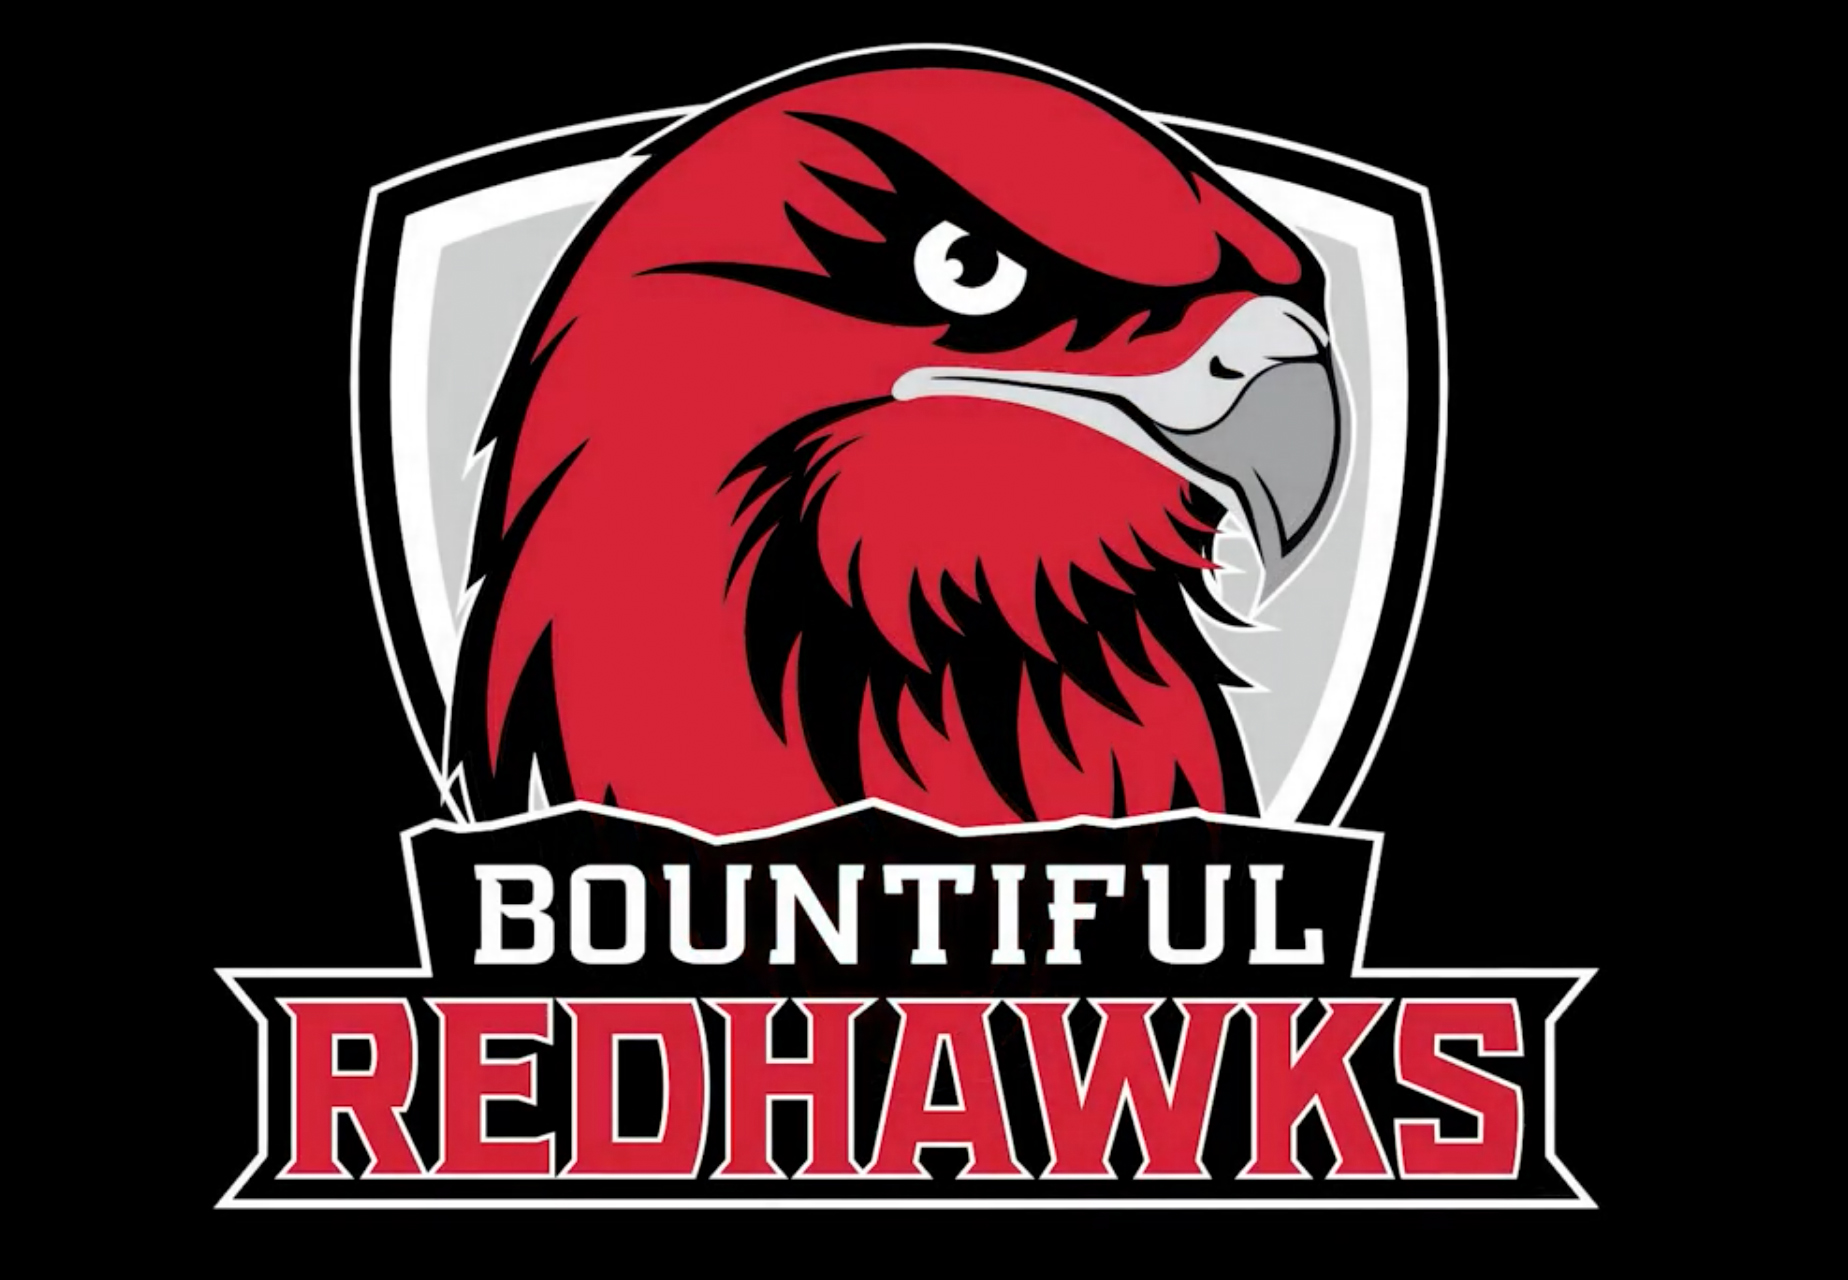 Bountiful High School's new mascot, the Redhawks, was announced Friday, April 9, 2021, and presented along with this possible logo, which is still under development.